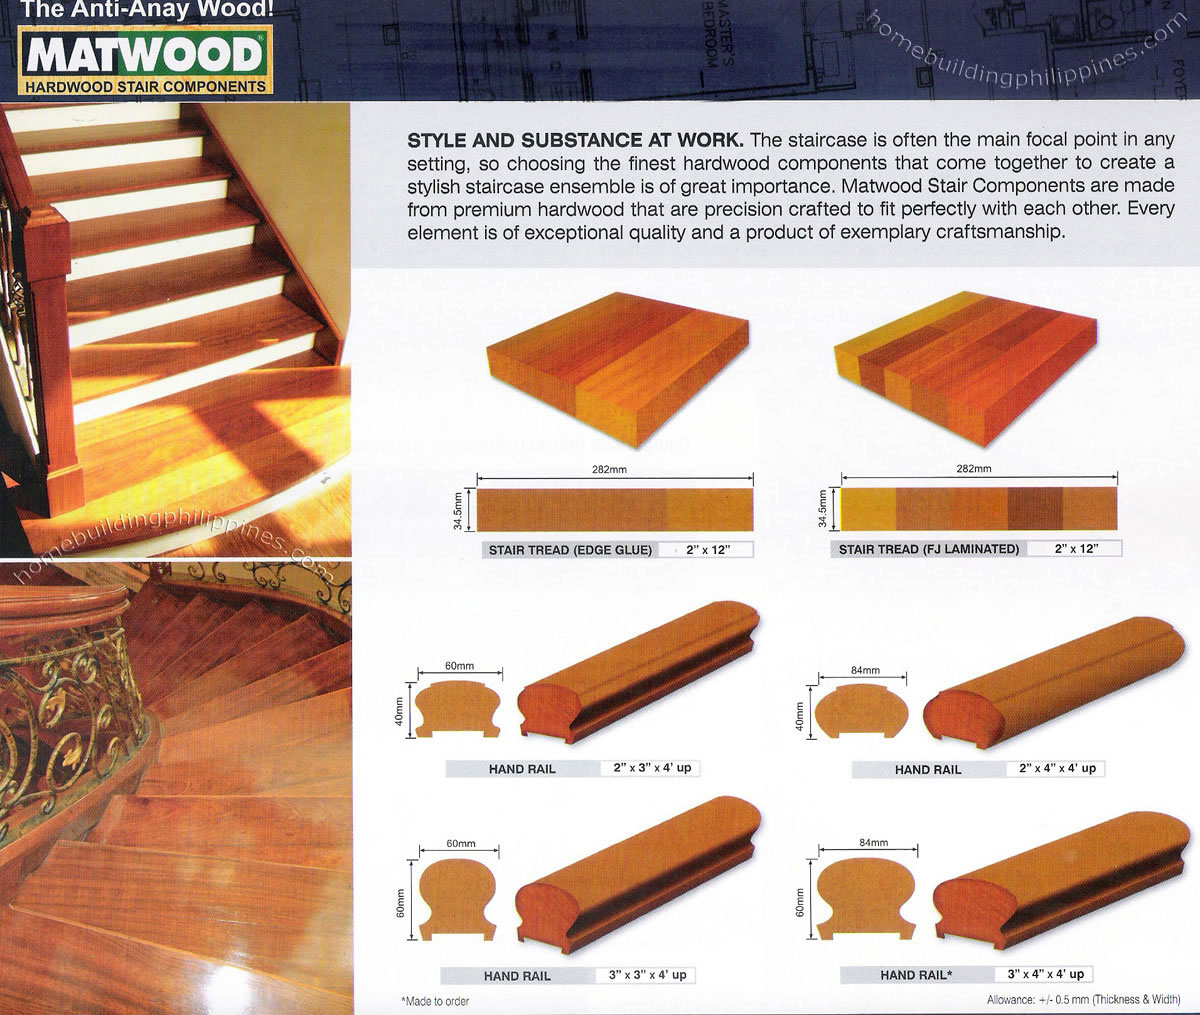 hardwood stair components wood staircase philippines